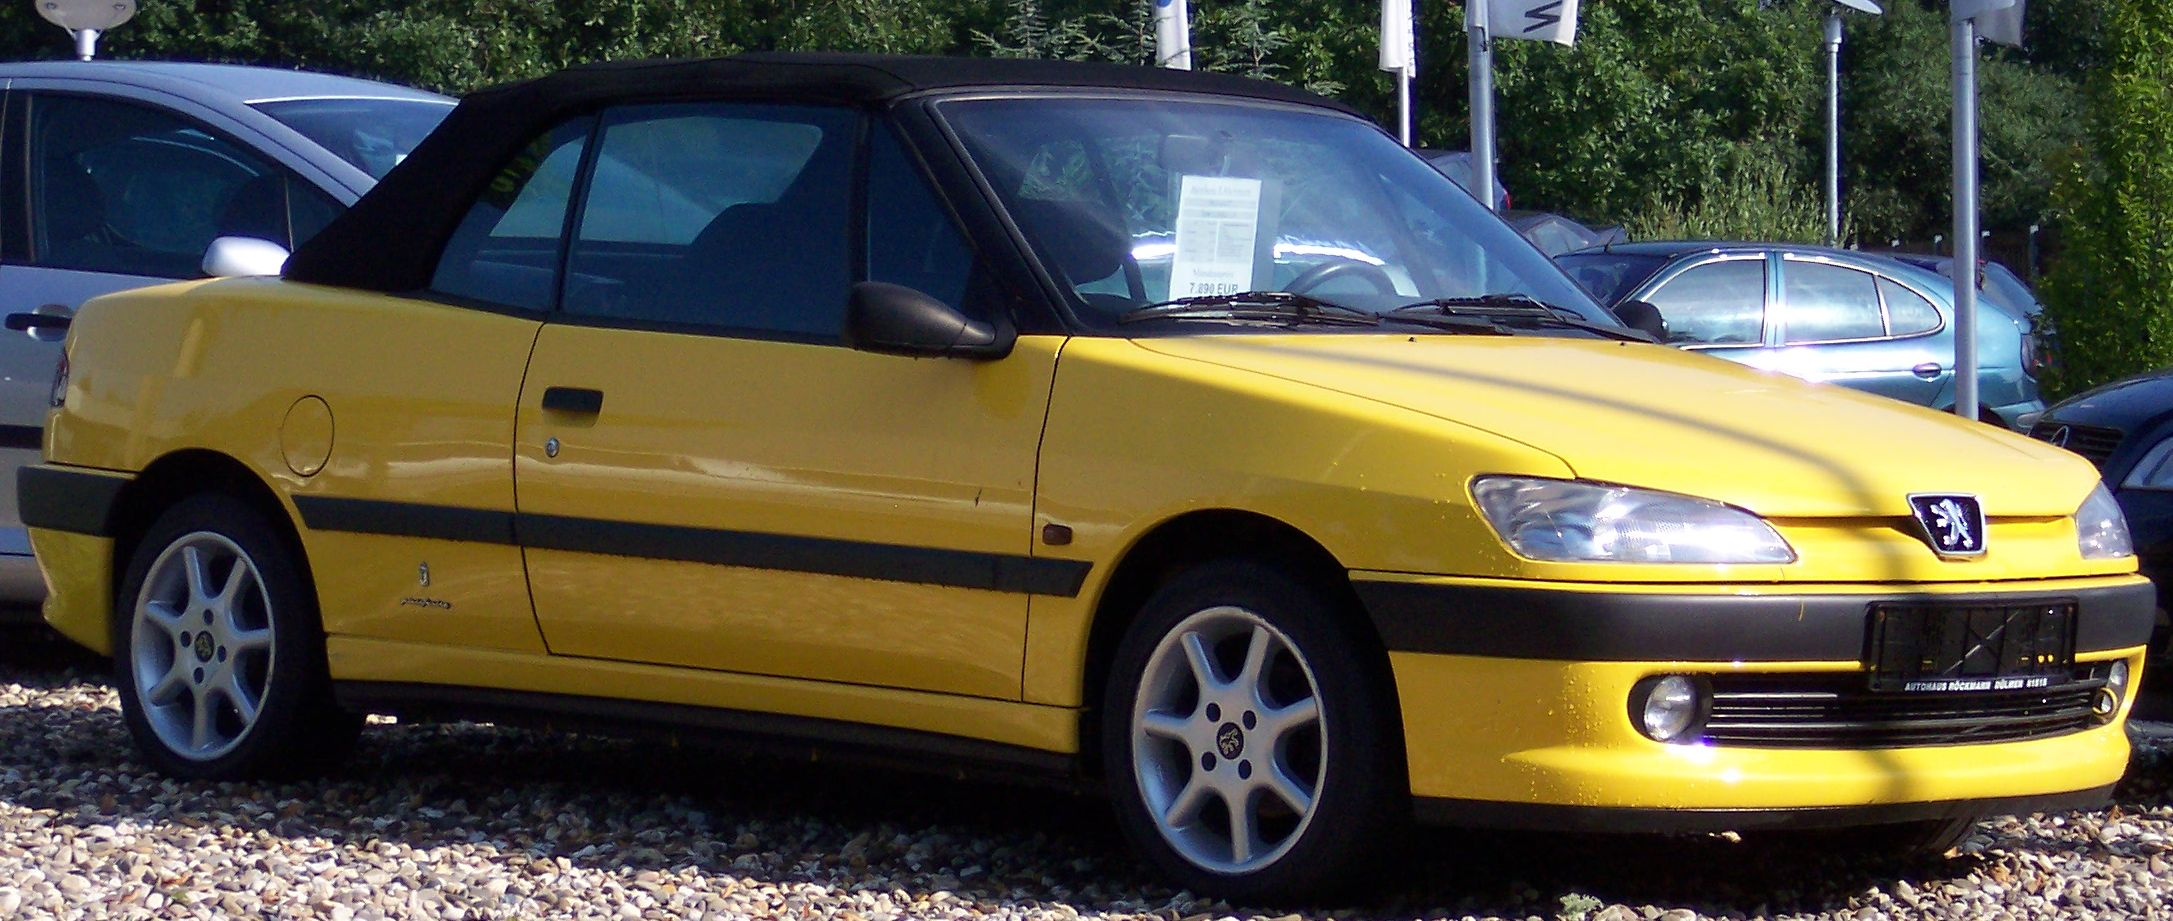 file peugeot 306 cabrio yellow wikimedia commons. Black Bedroom Furniture Sets. Home Design Ideas